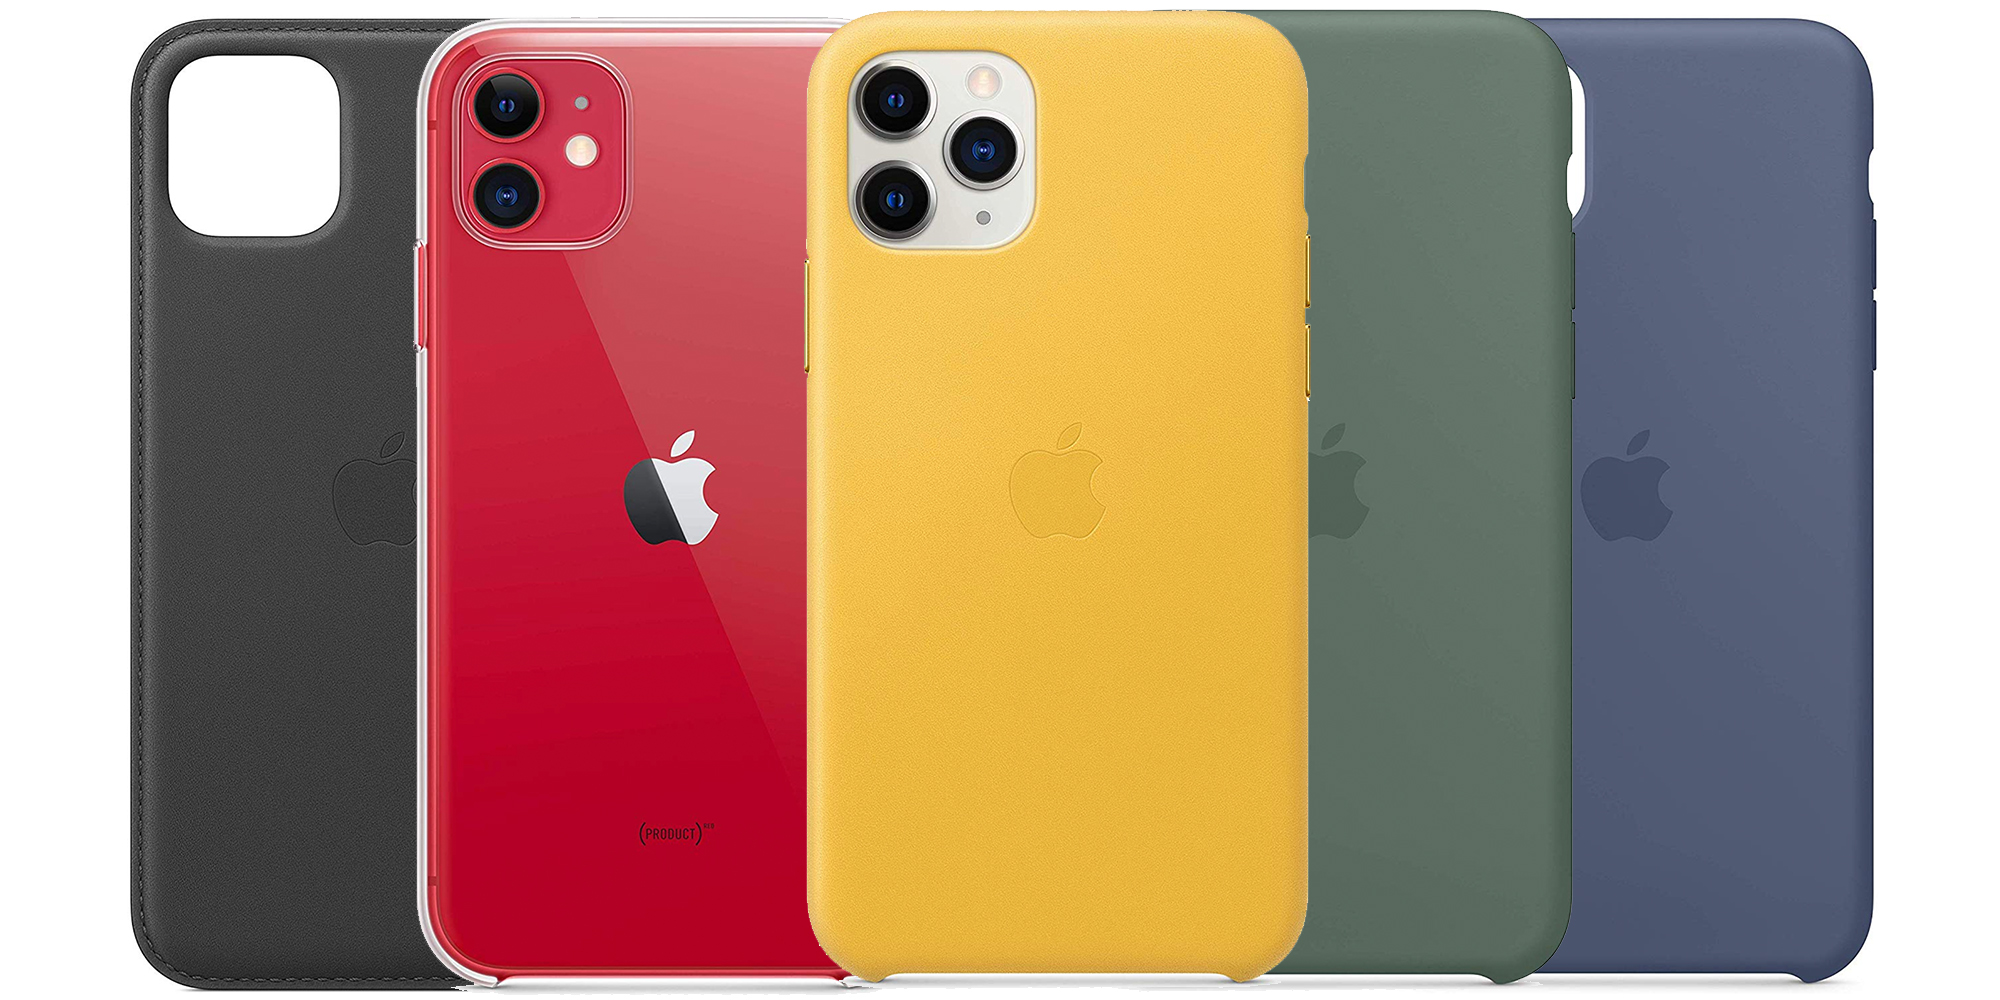 Nearly every official Apple iPhone case is on sale from $24